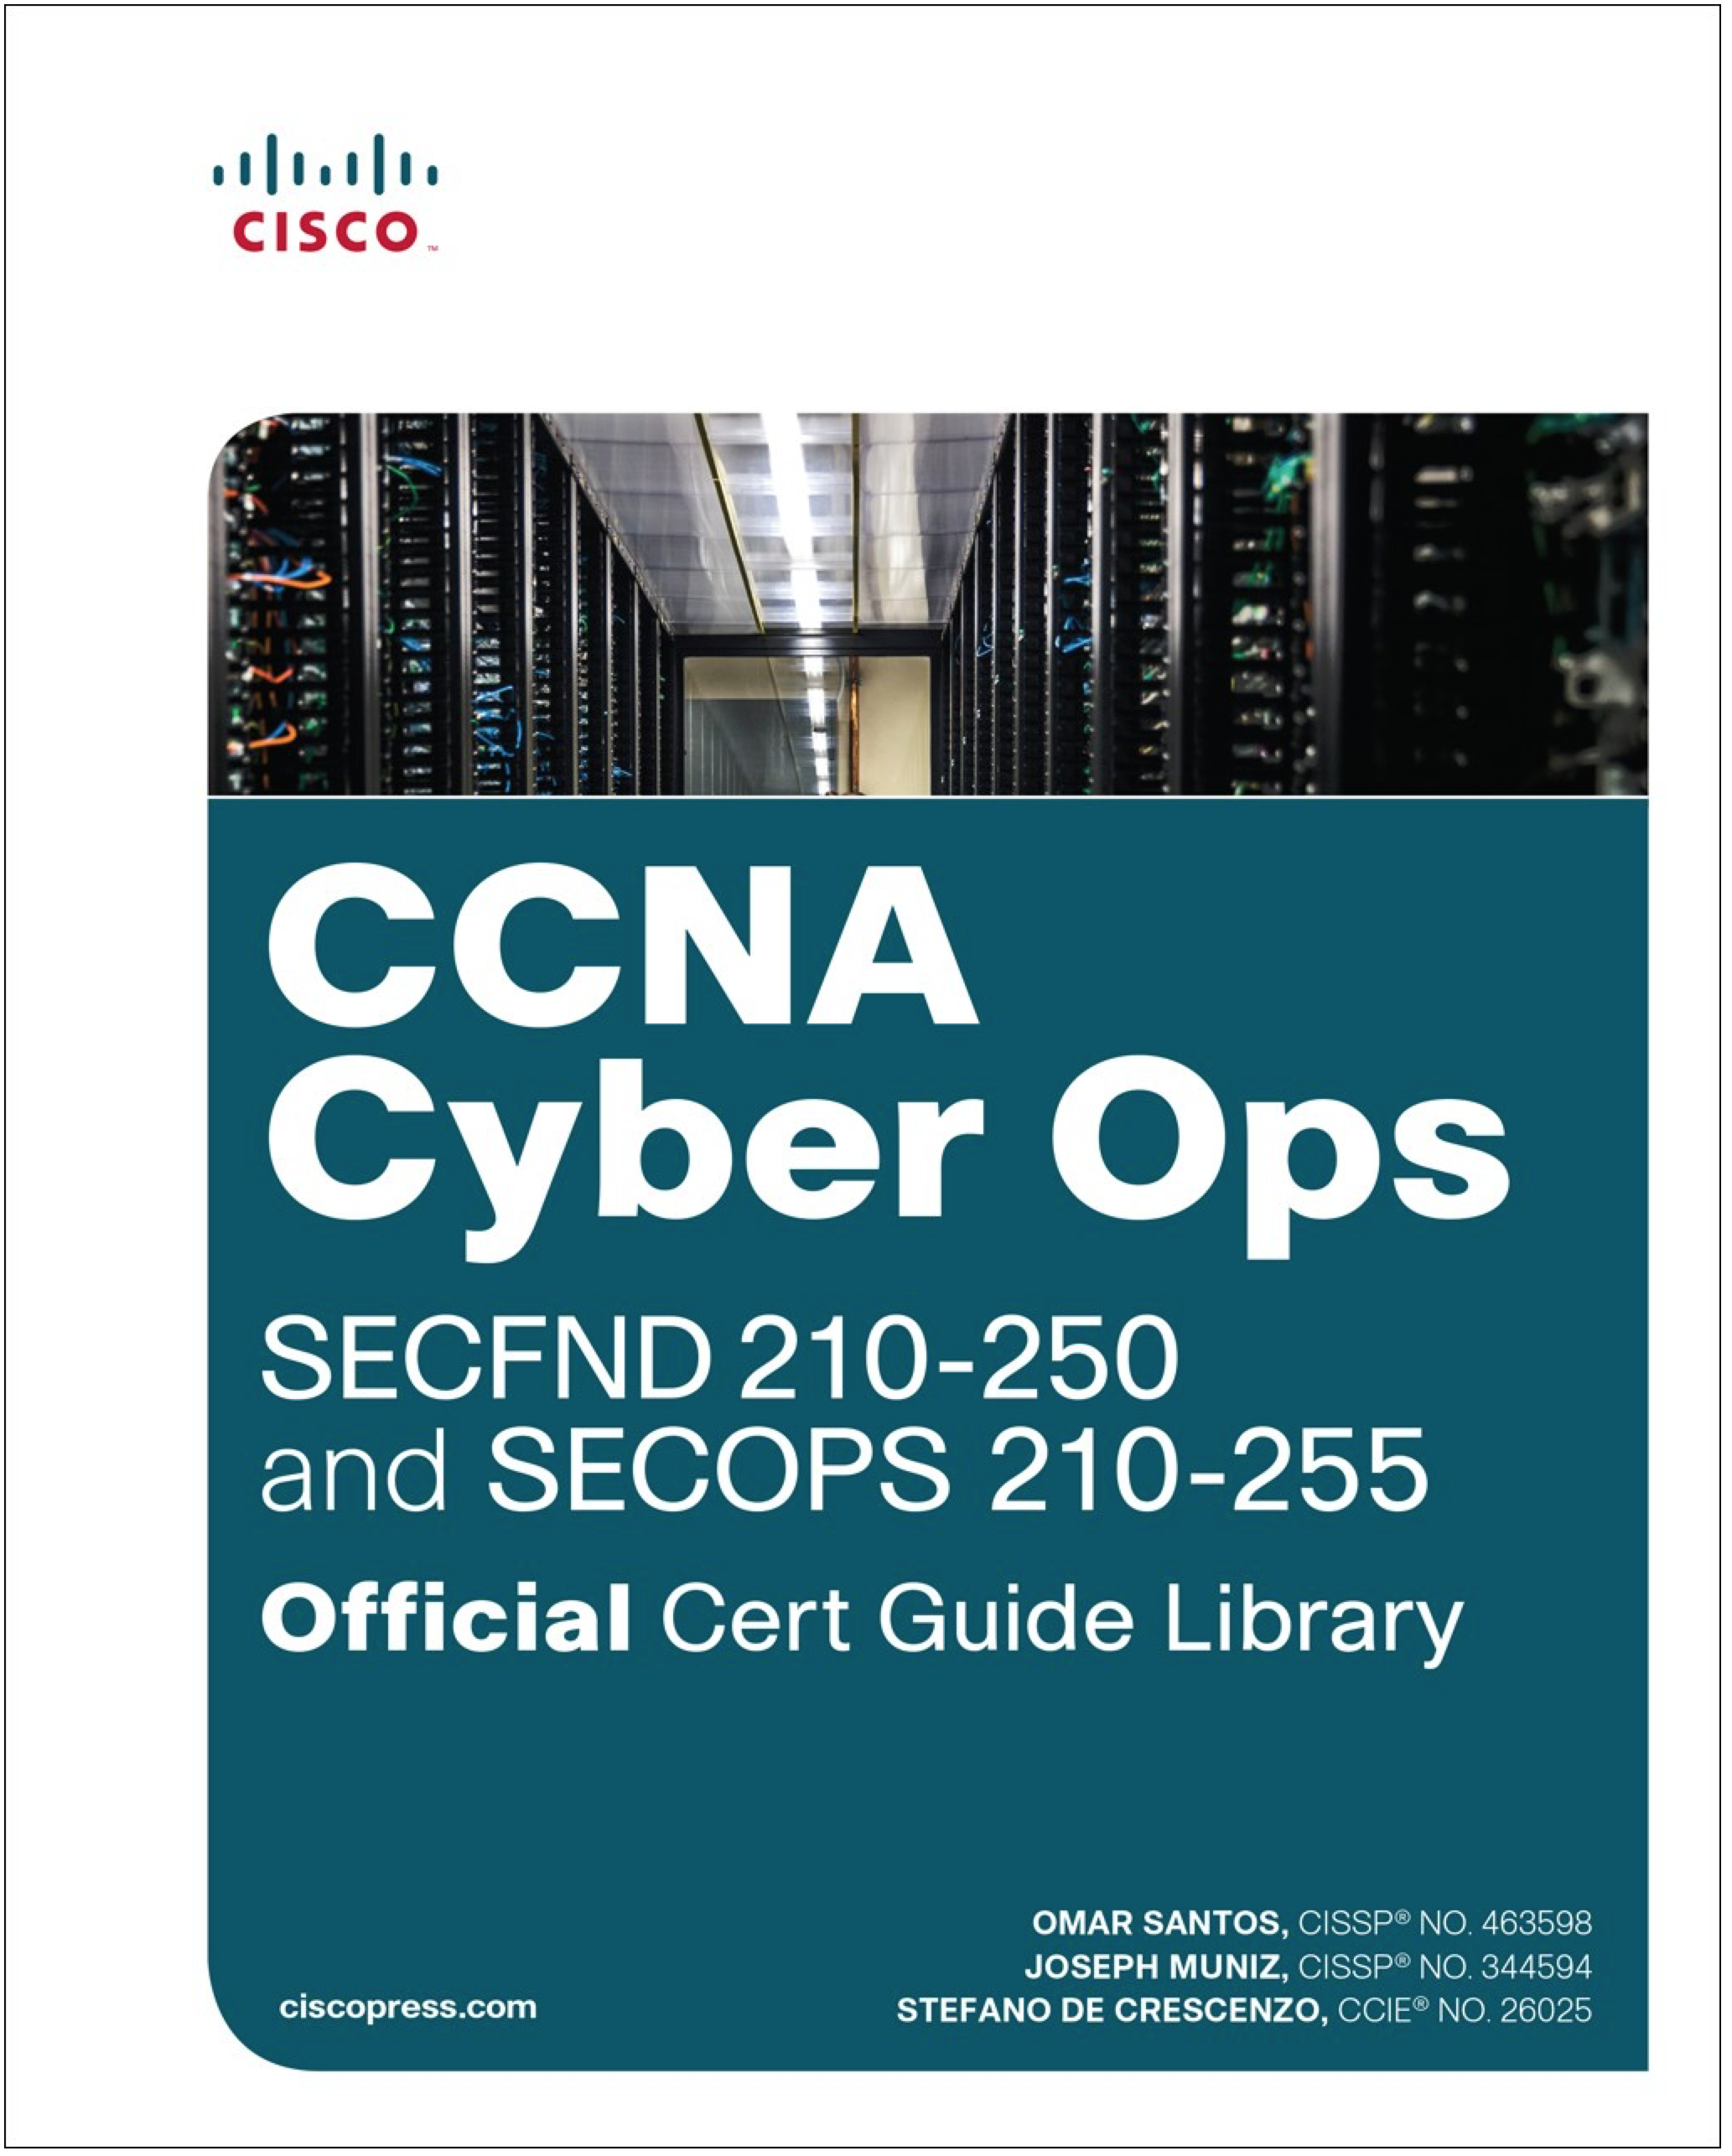 Overview of ciscos ccna cyber ops certification cisco press books for your study cisco press has two books one for each exam making up their ccna cyber ops official cert guide library xflitez Images